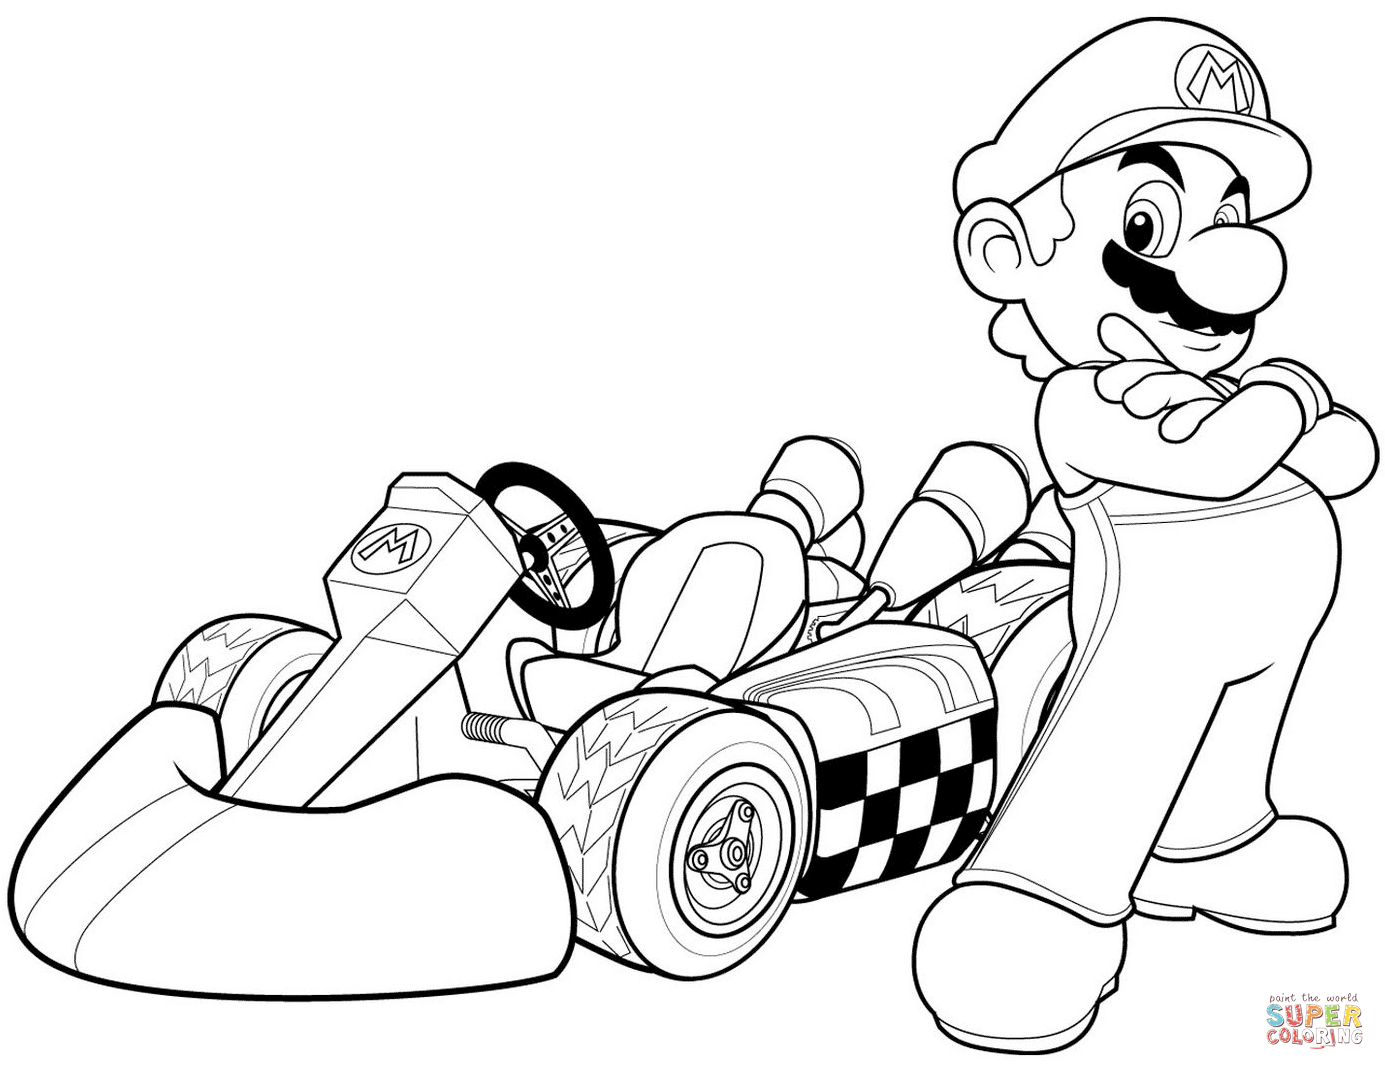 Super Mario Bros Coloring Pages Download Of Toad Mario Drawing at Getdrawings Gallery